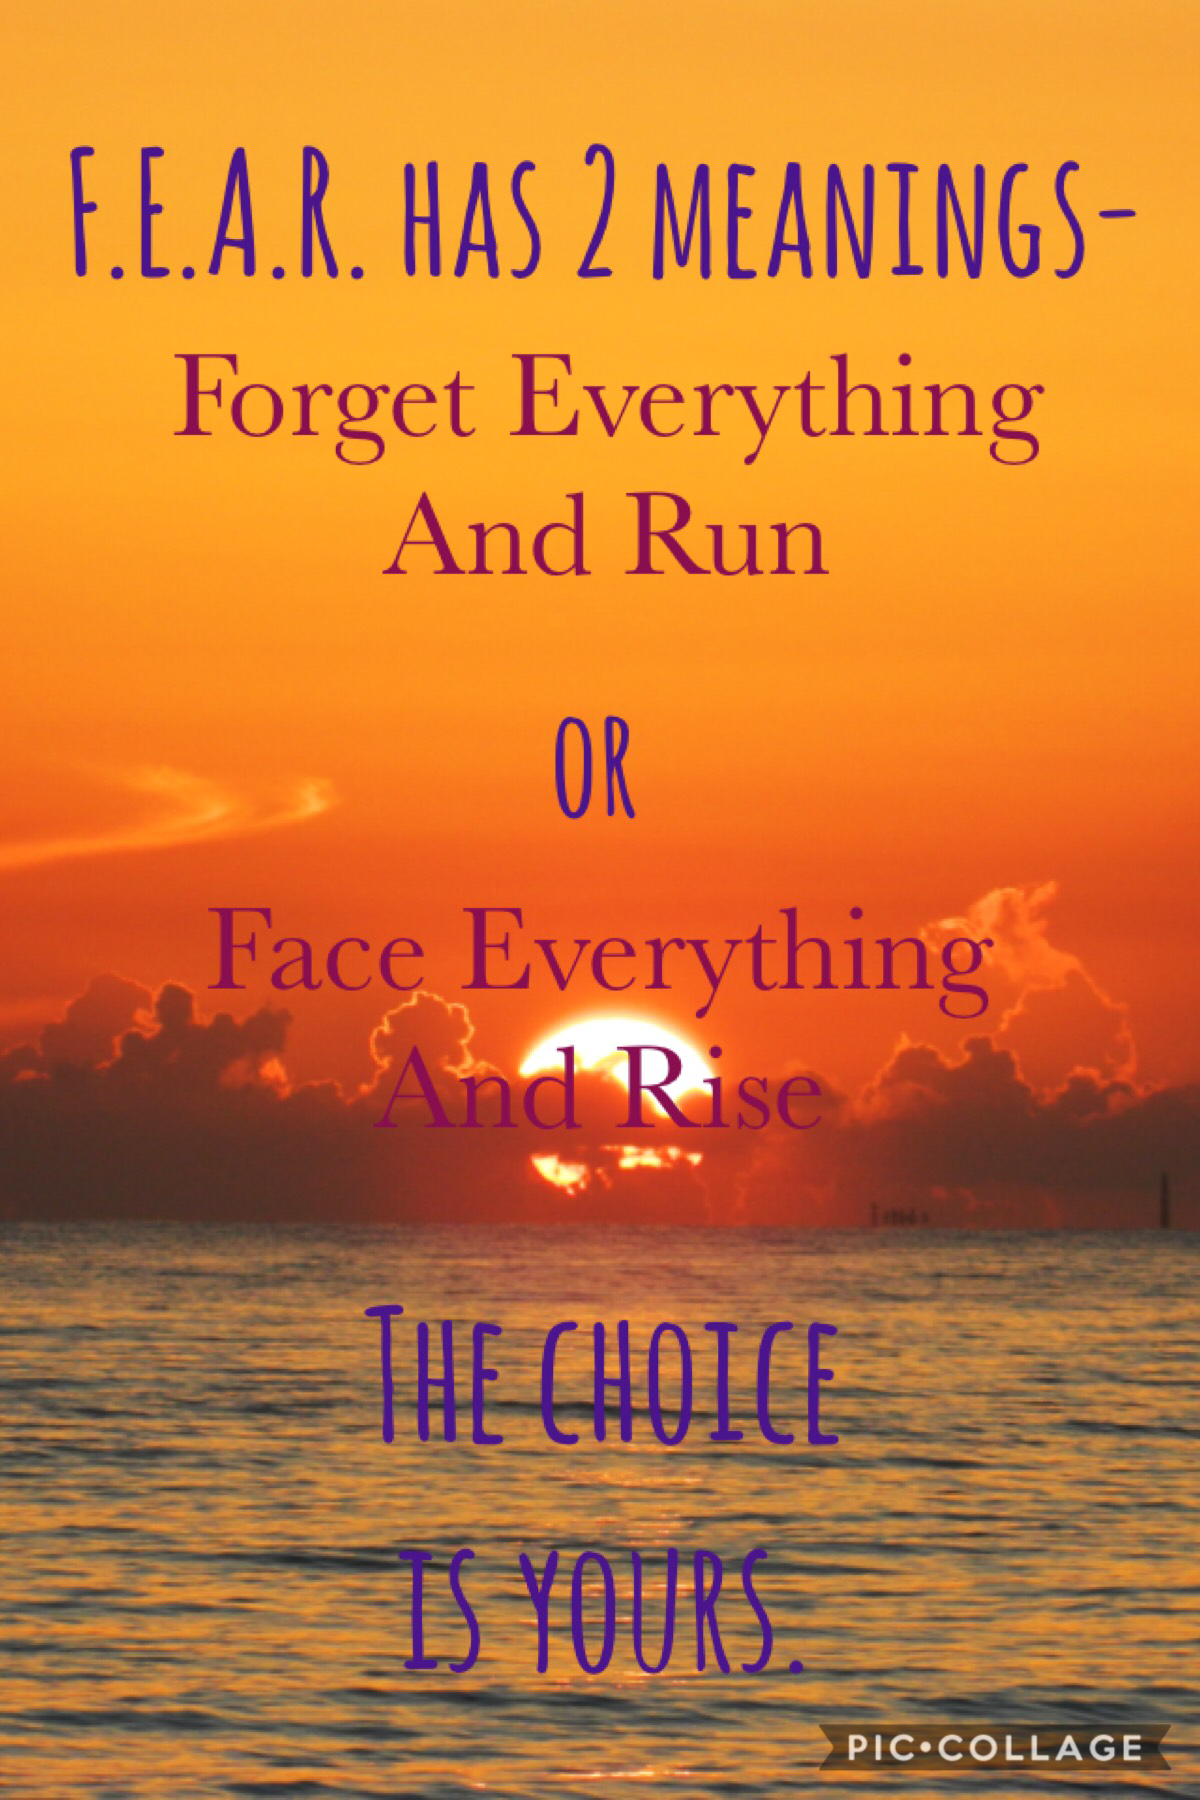 Face Everything And Rise!